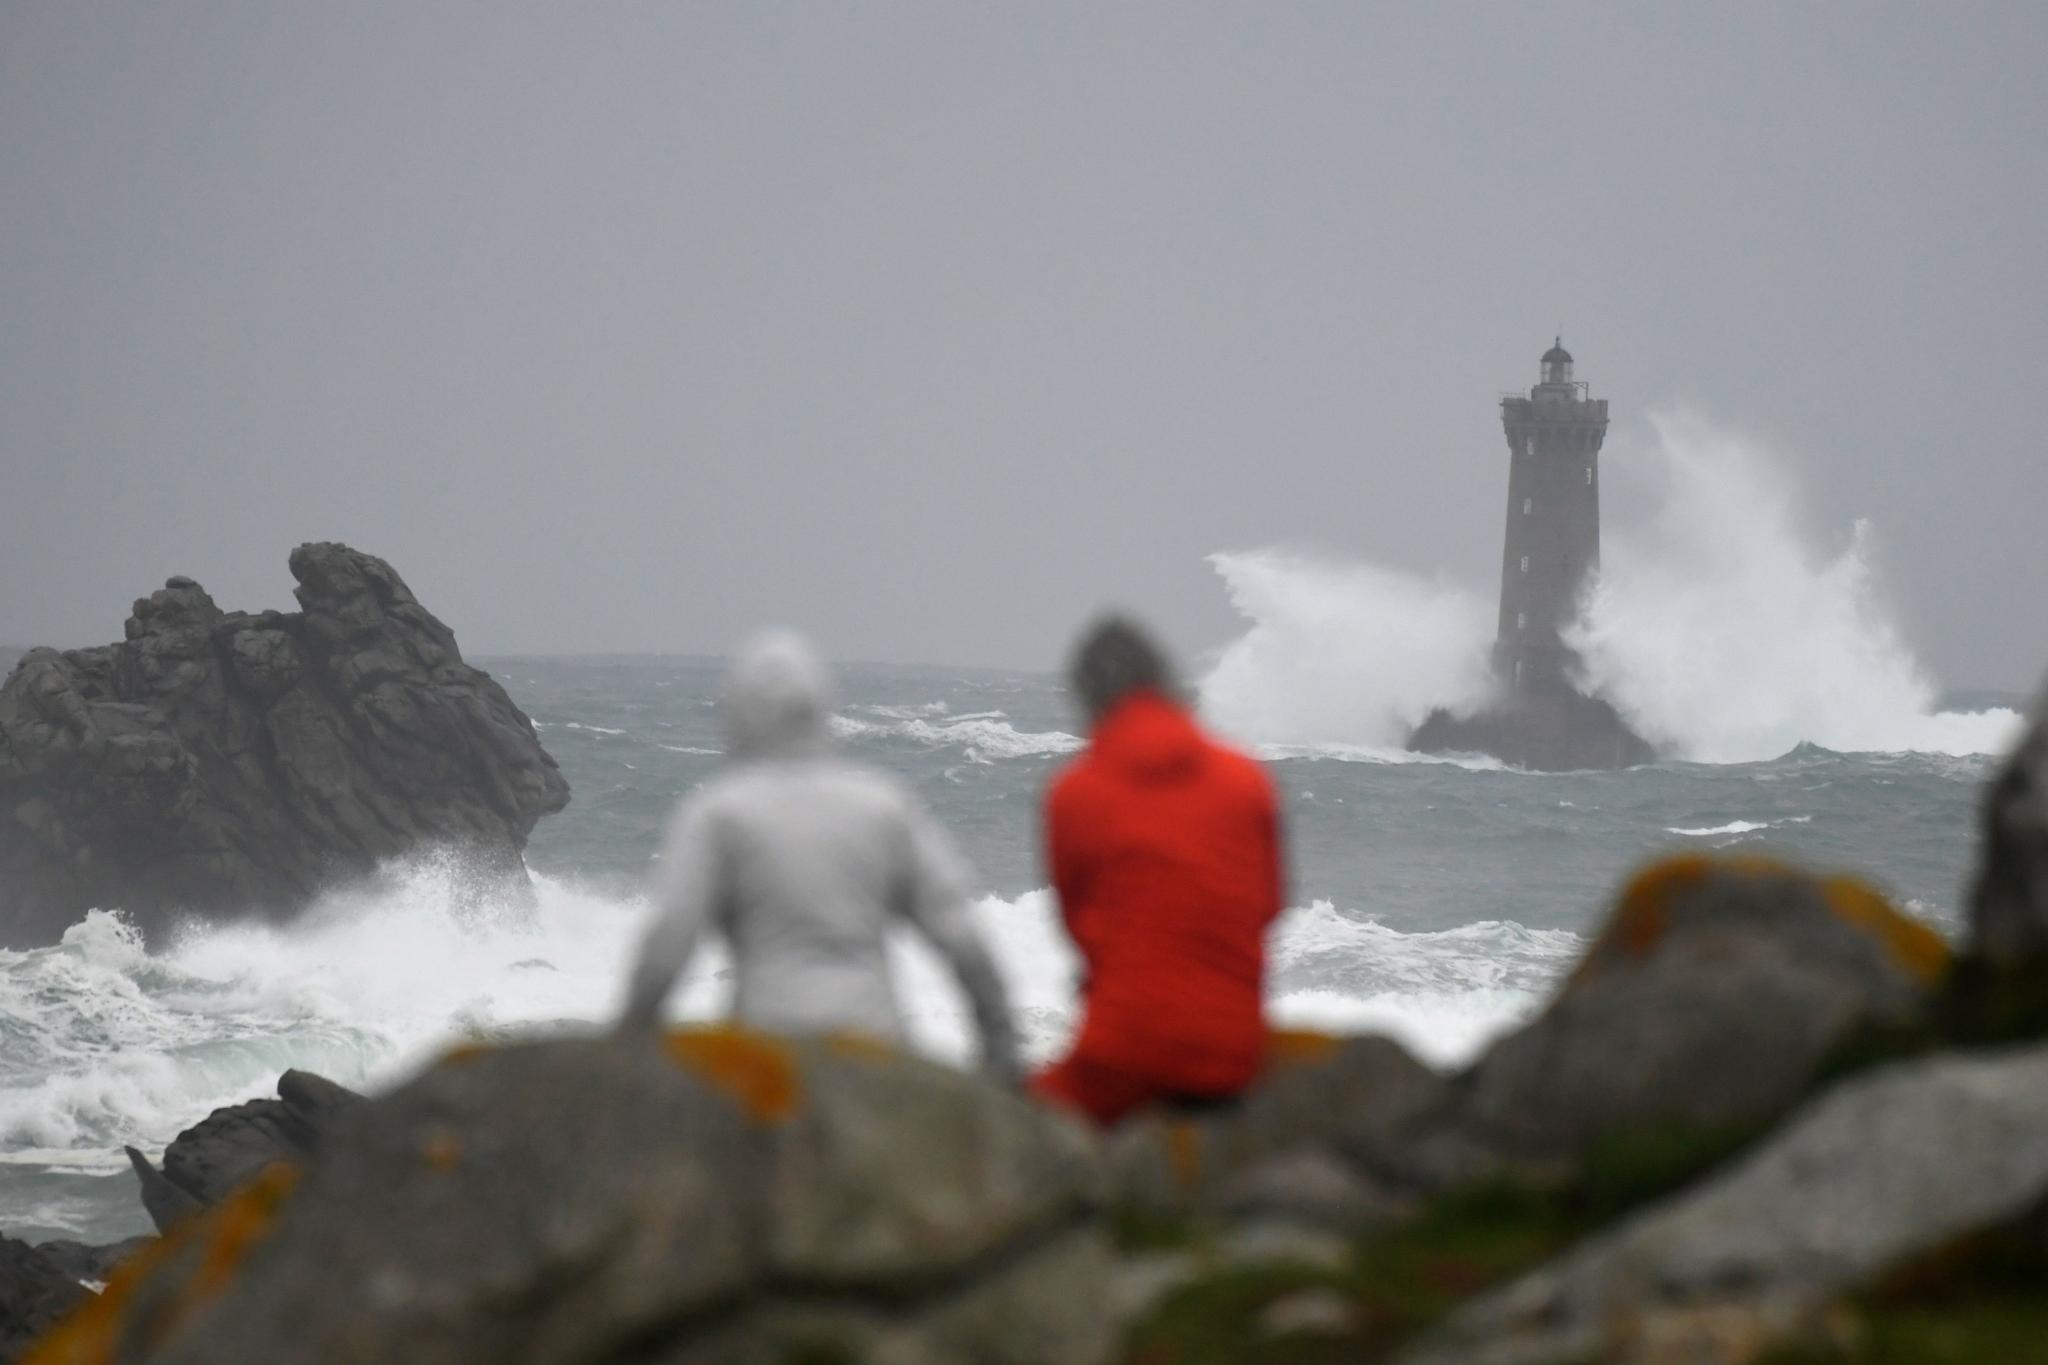 Storm Amelie Pummels France with Violent Winds and Downpours, Around 1.4 Lakh People Without Electricity